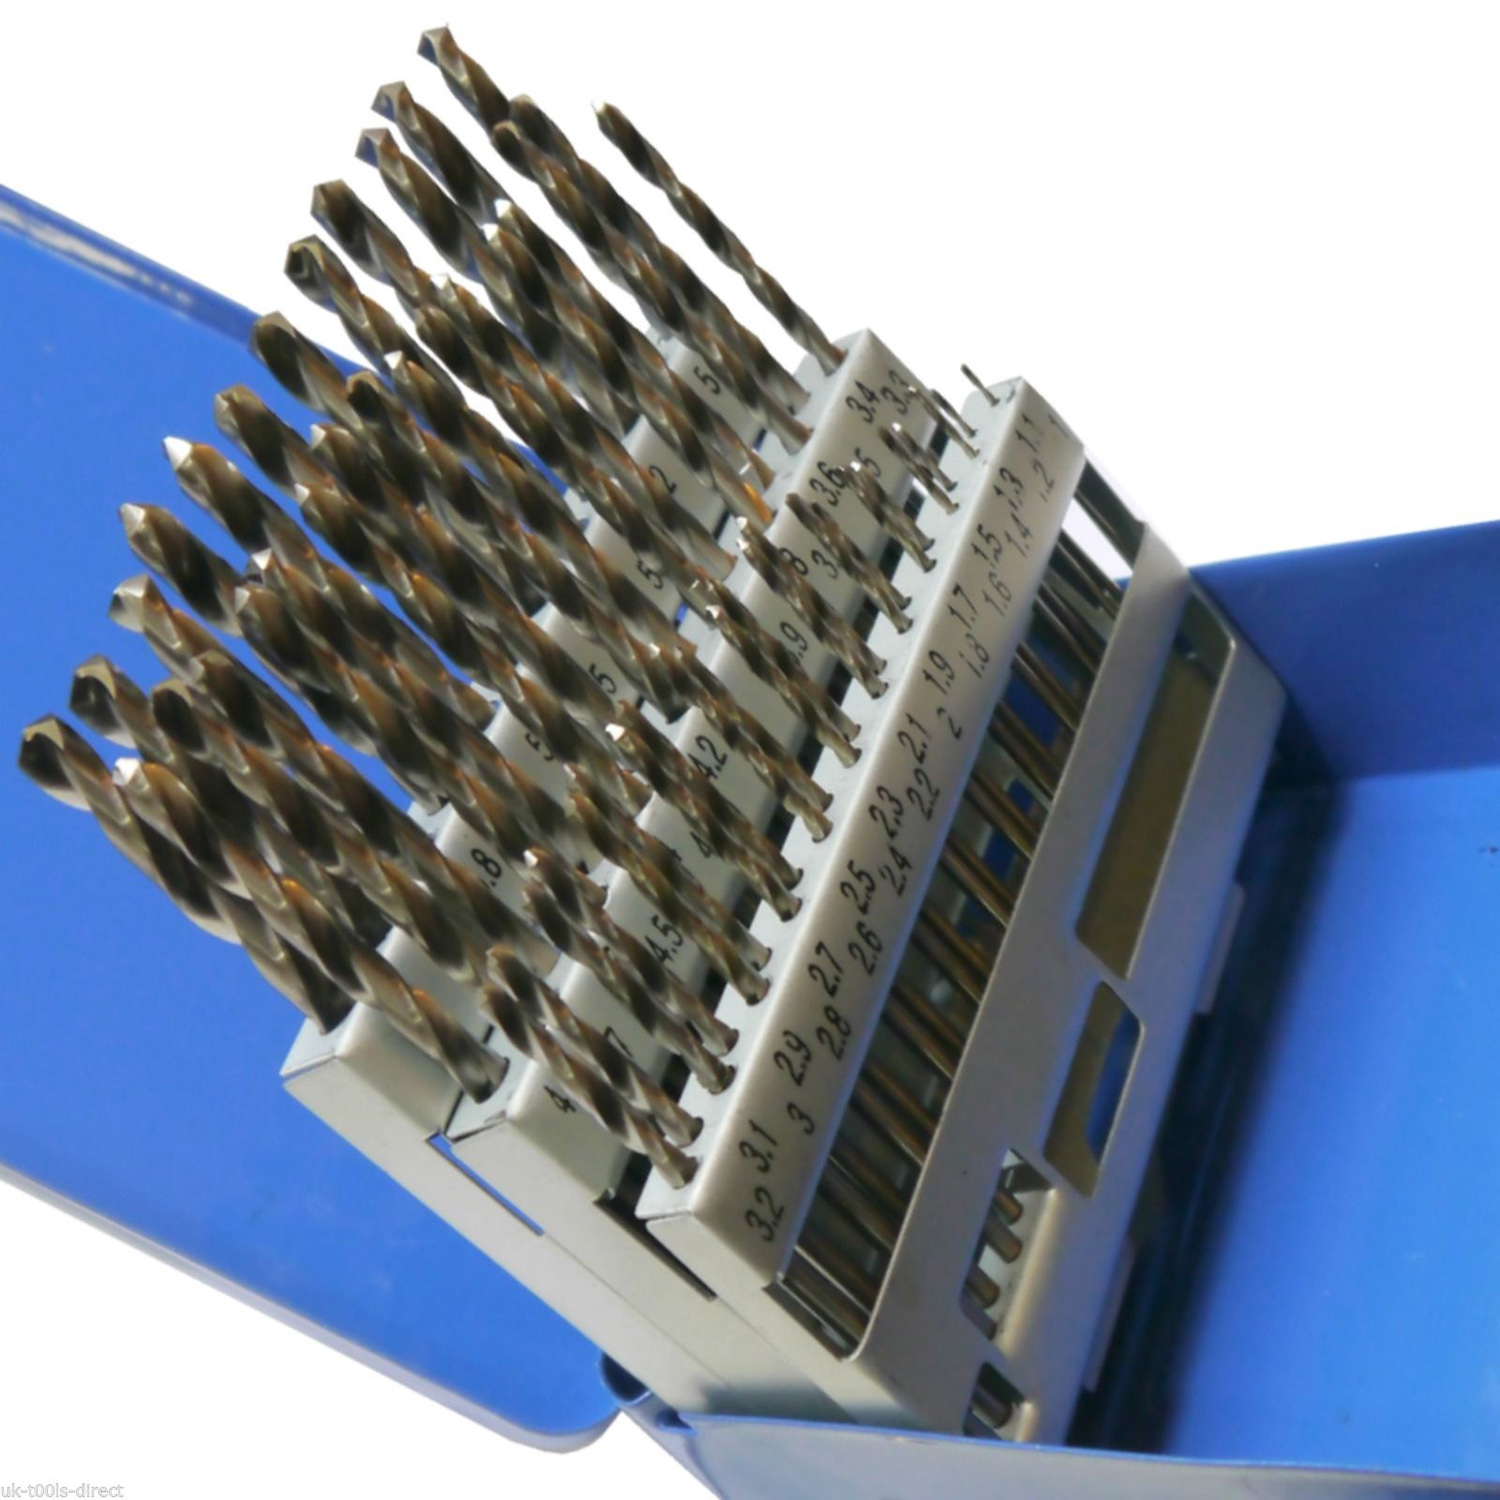 Image 3 - 51pc Engineering Hss Drill Bit Set Hss 1   6mm in 0.1mm Increments-in Drill Bits from Tools